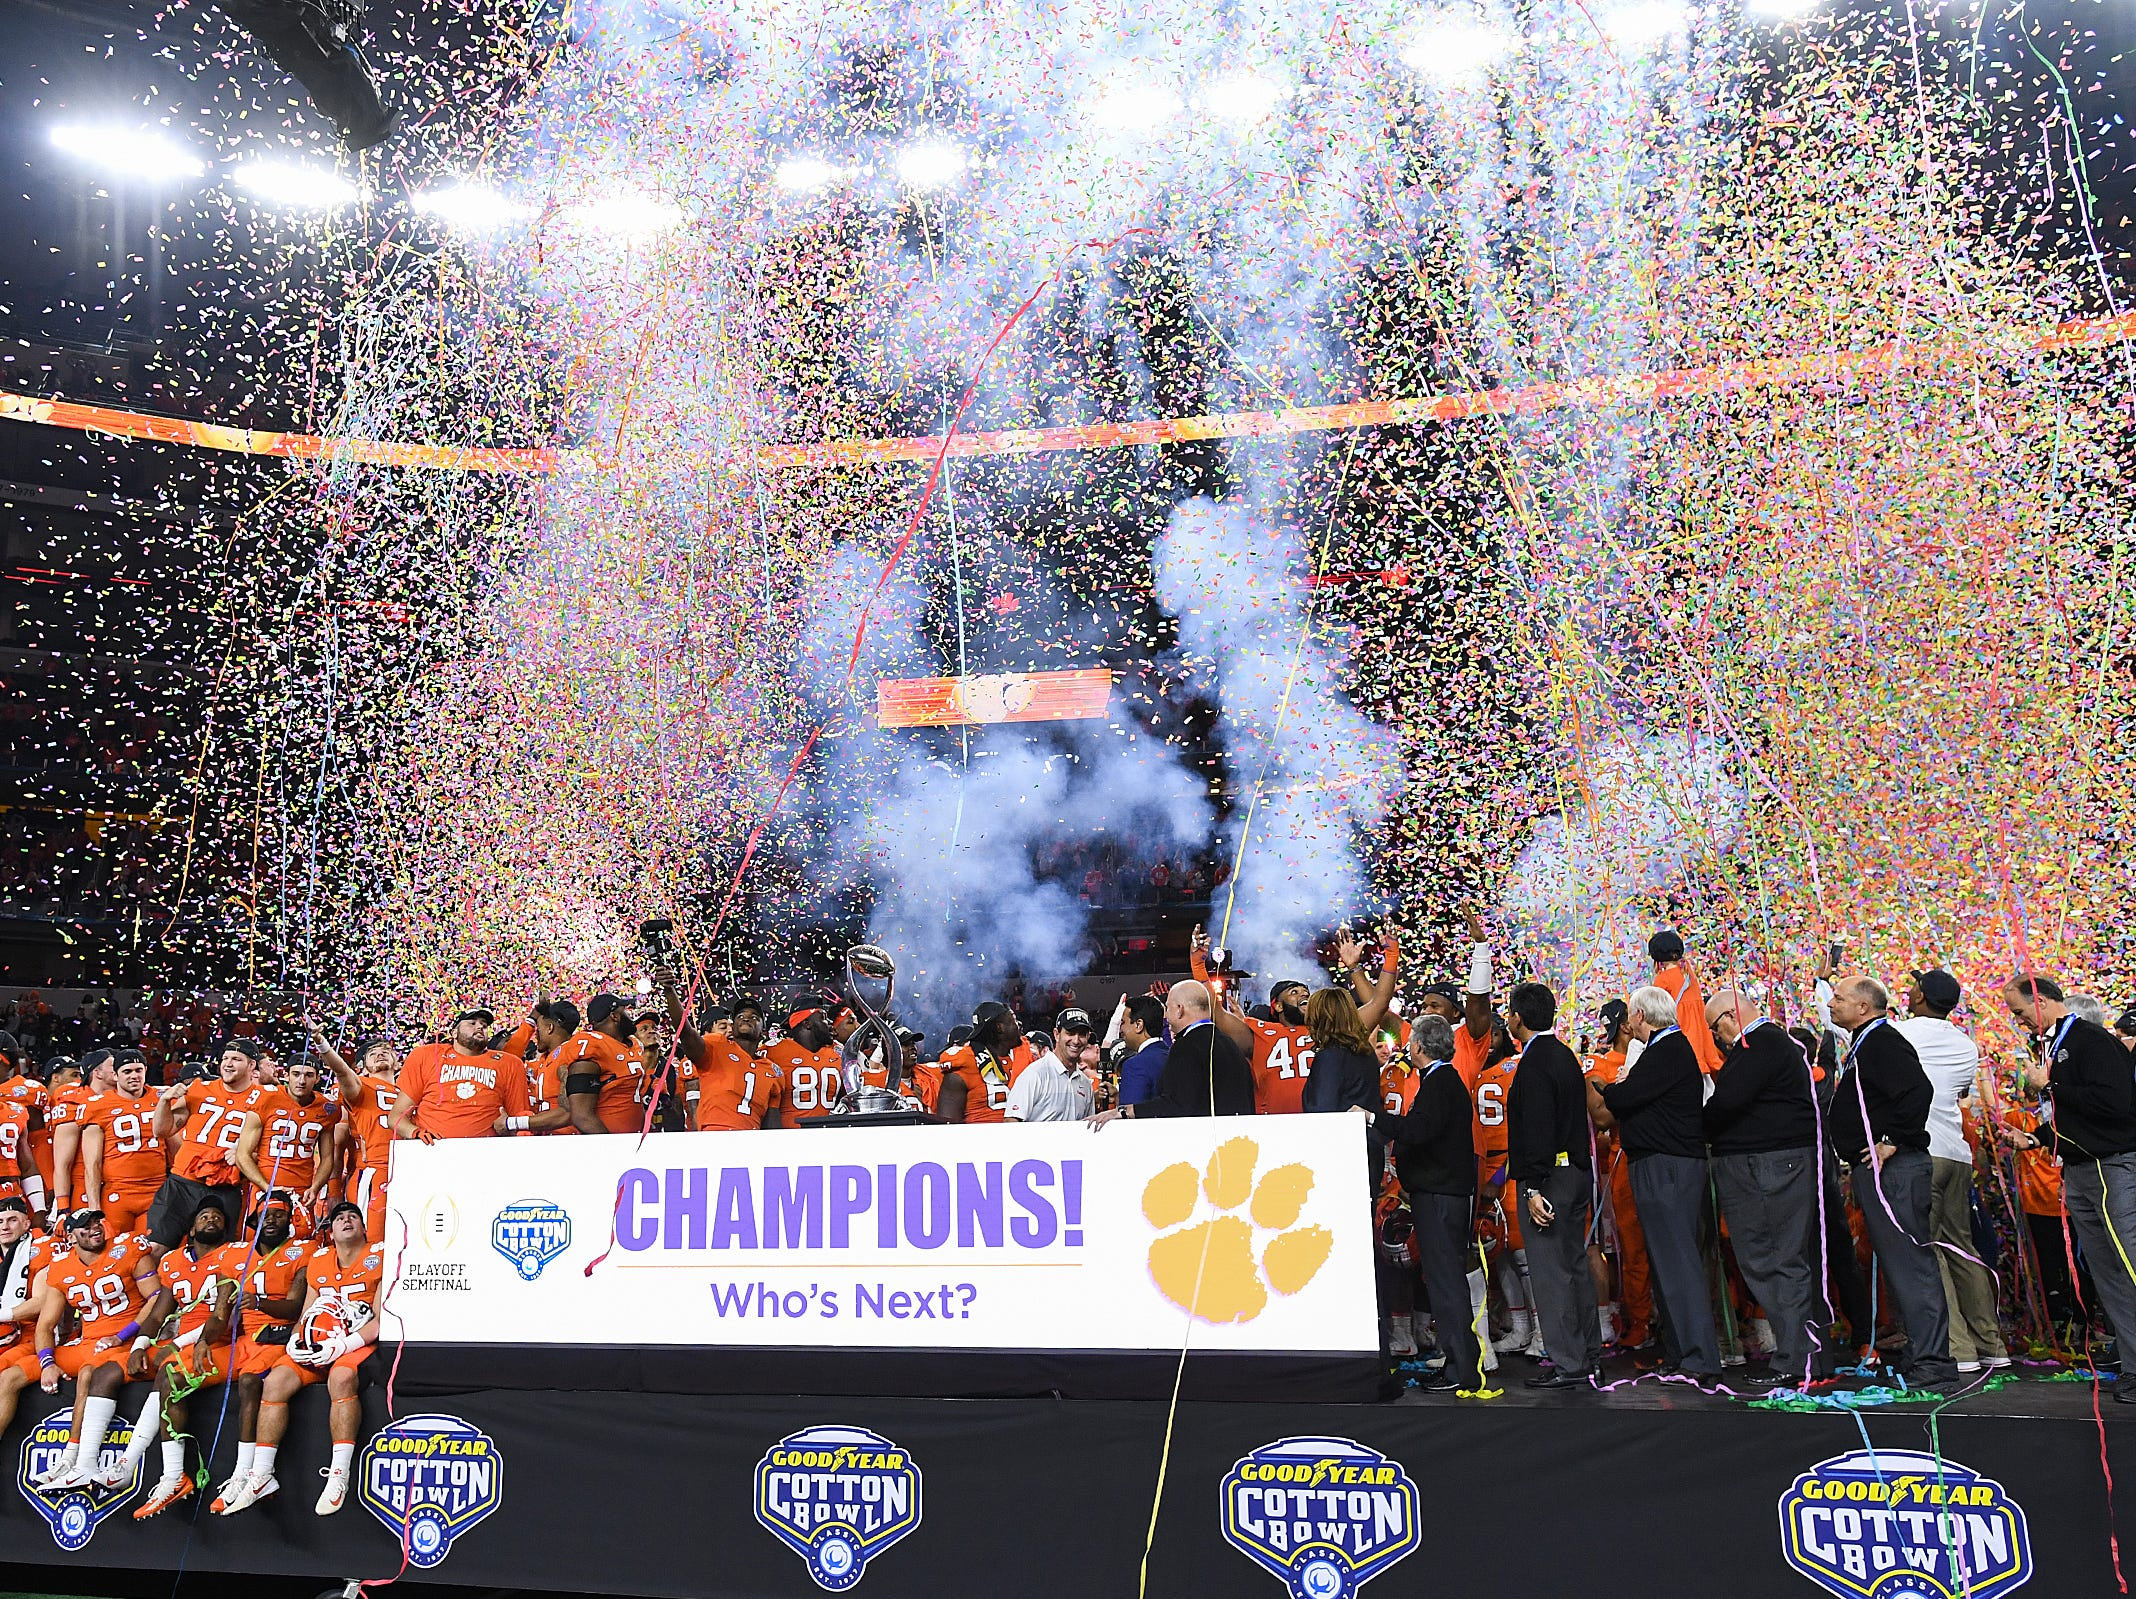 Clemson celebrates after their 30-3 win over Notre Dame at AT&T stadium in Arlington, TX Saturday, December 29, 2018.